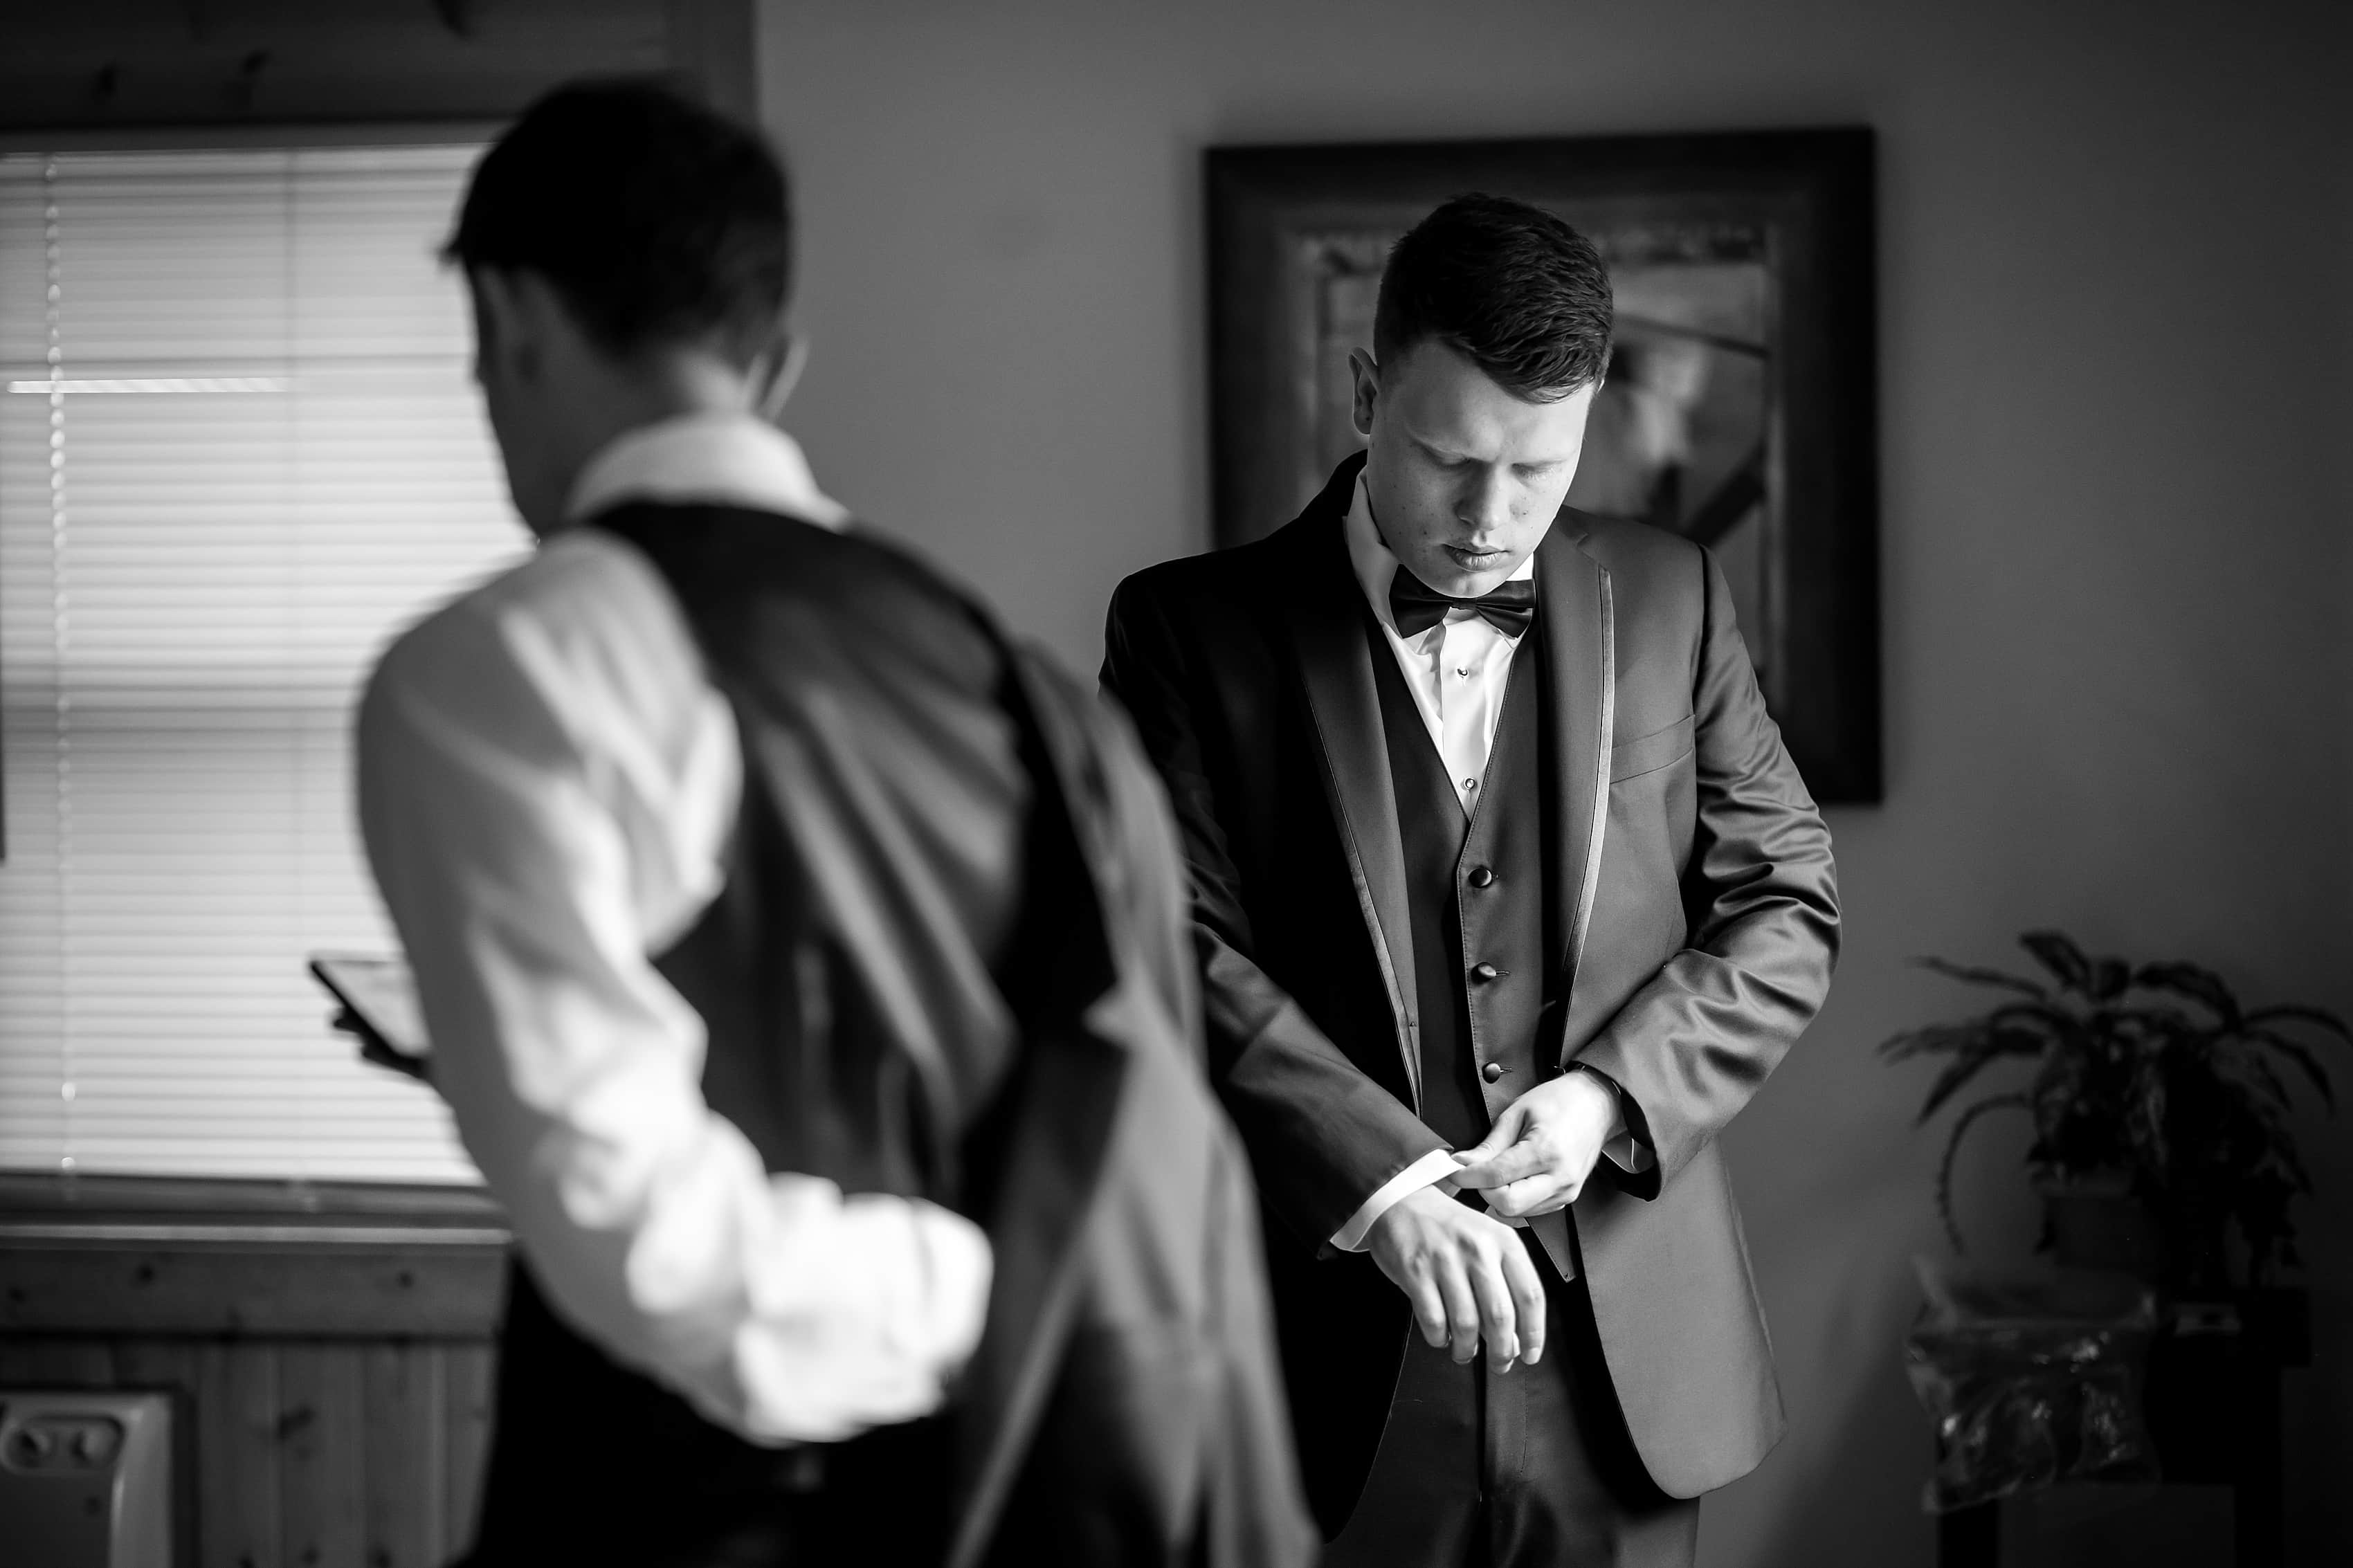 Groom puts on shirt and jacket while getting ready for wedding